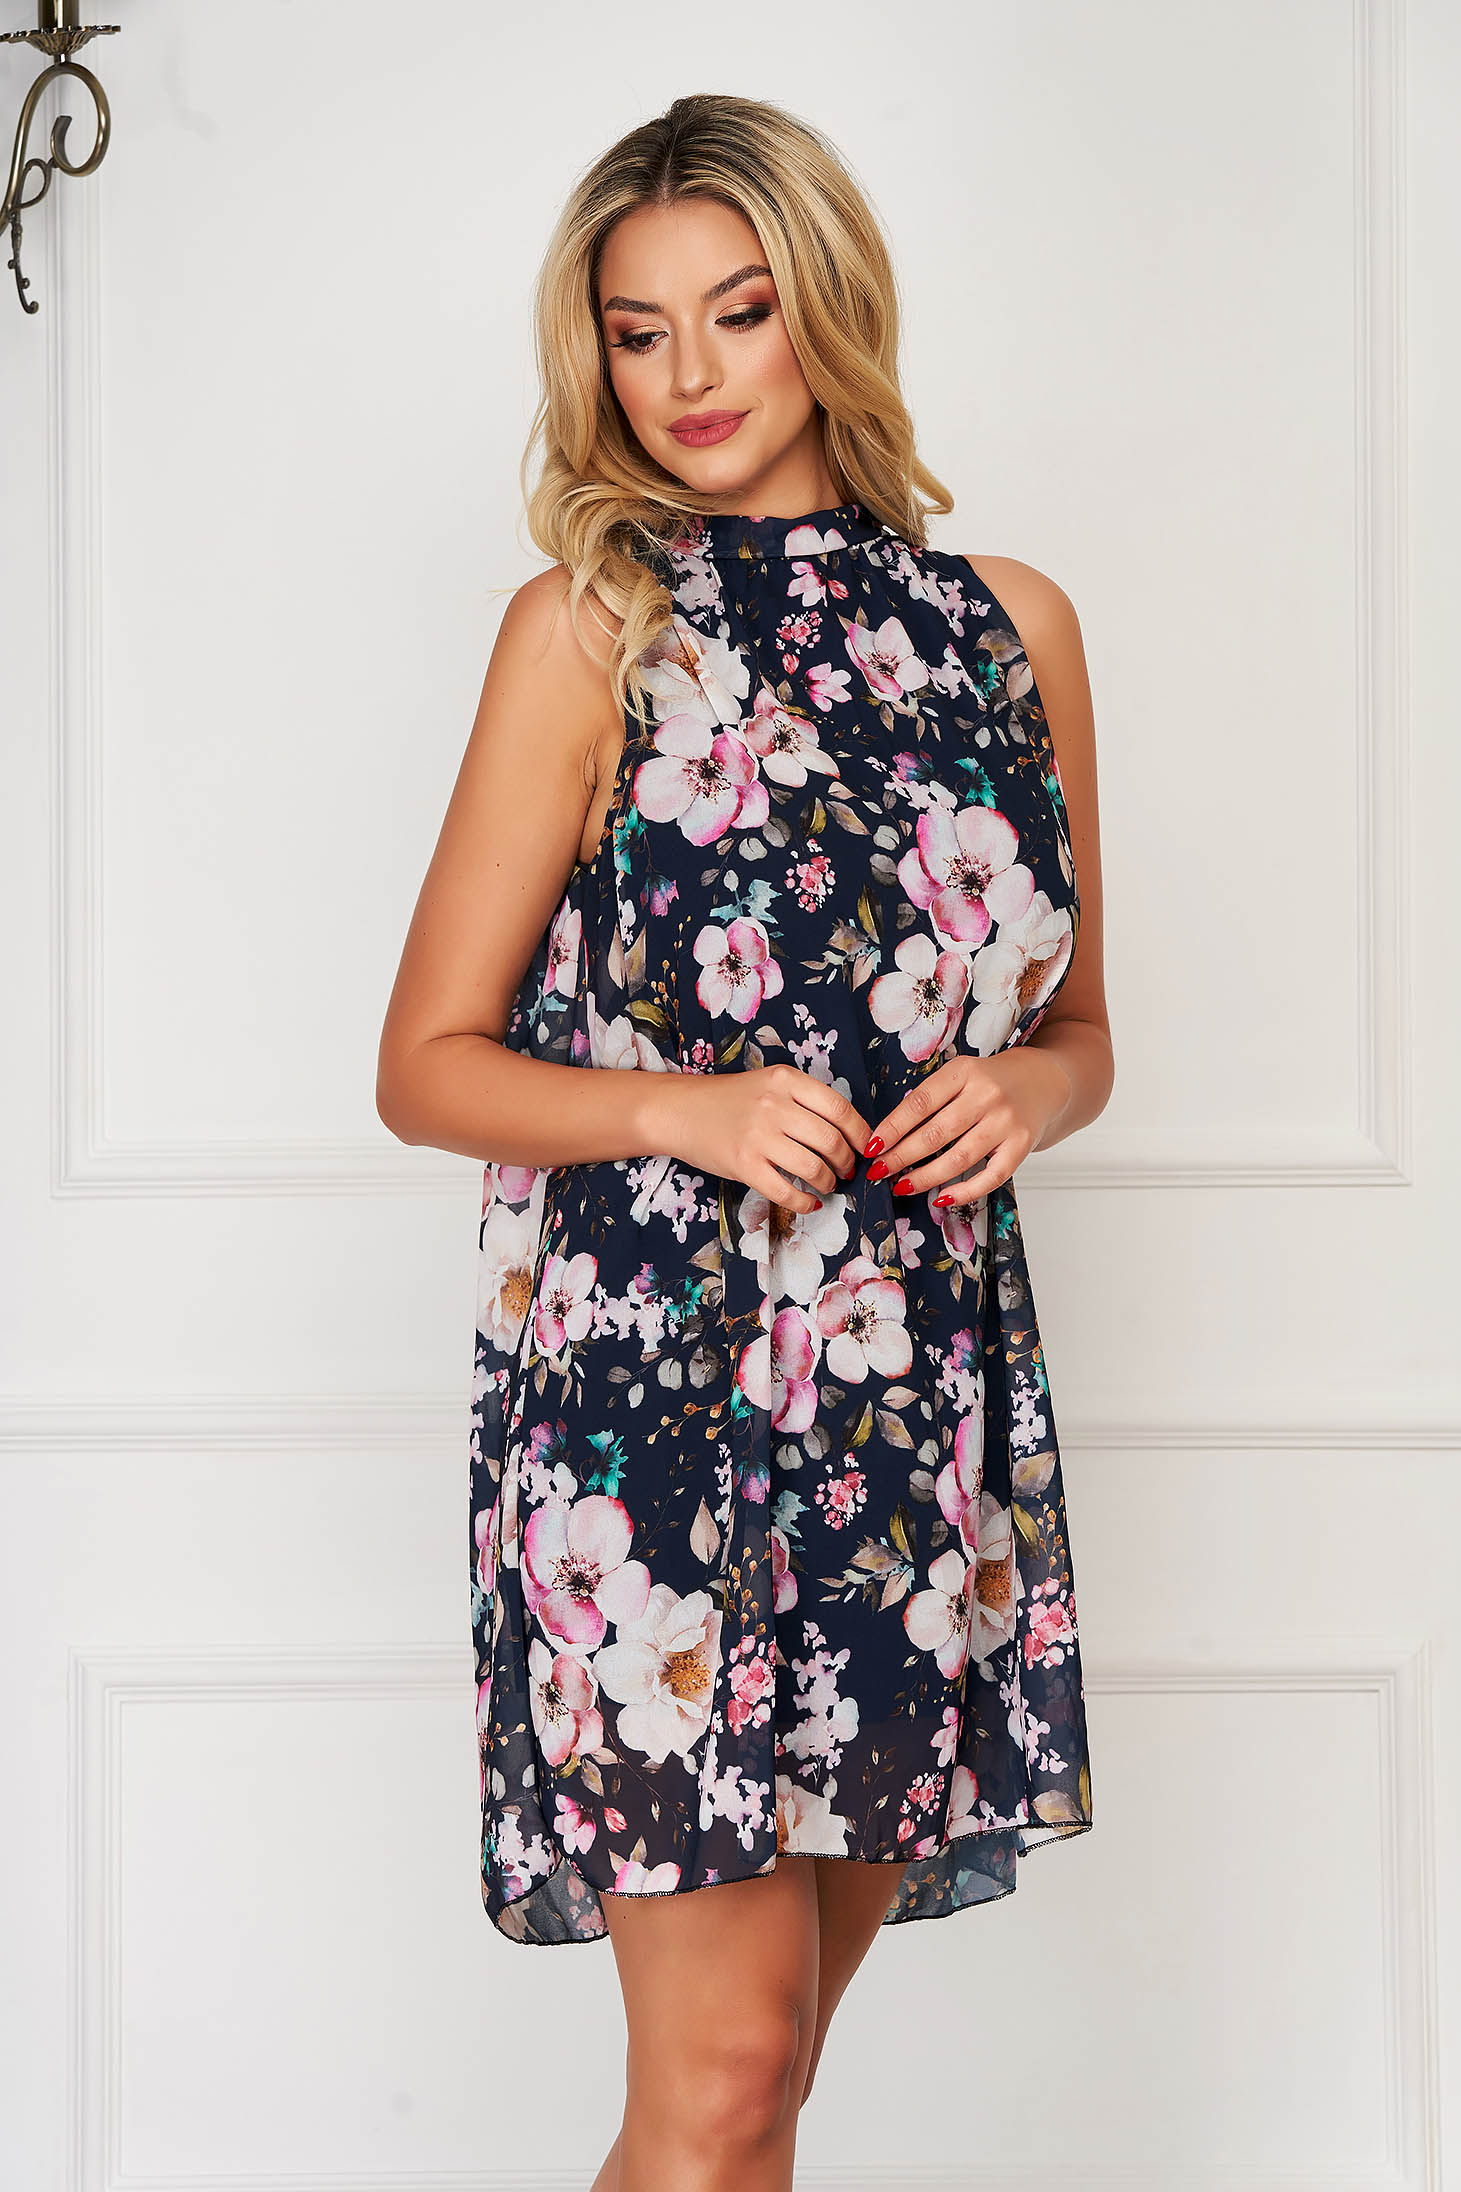 Darkblue dress elegant daily flared from veil fabric with floral print